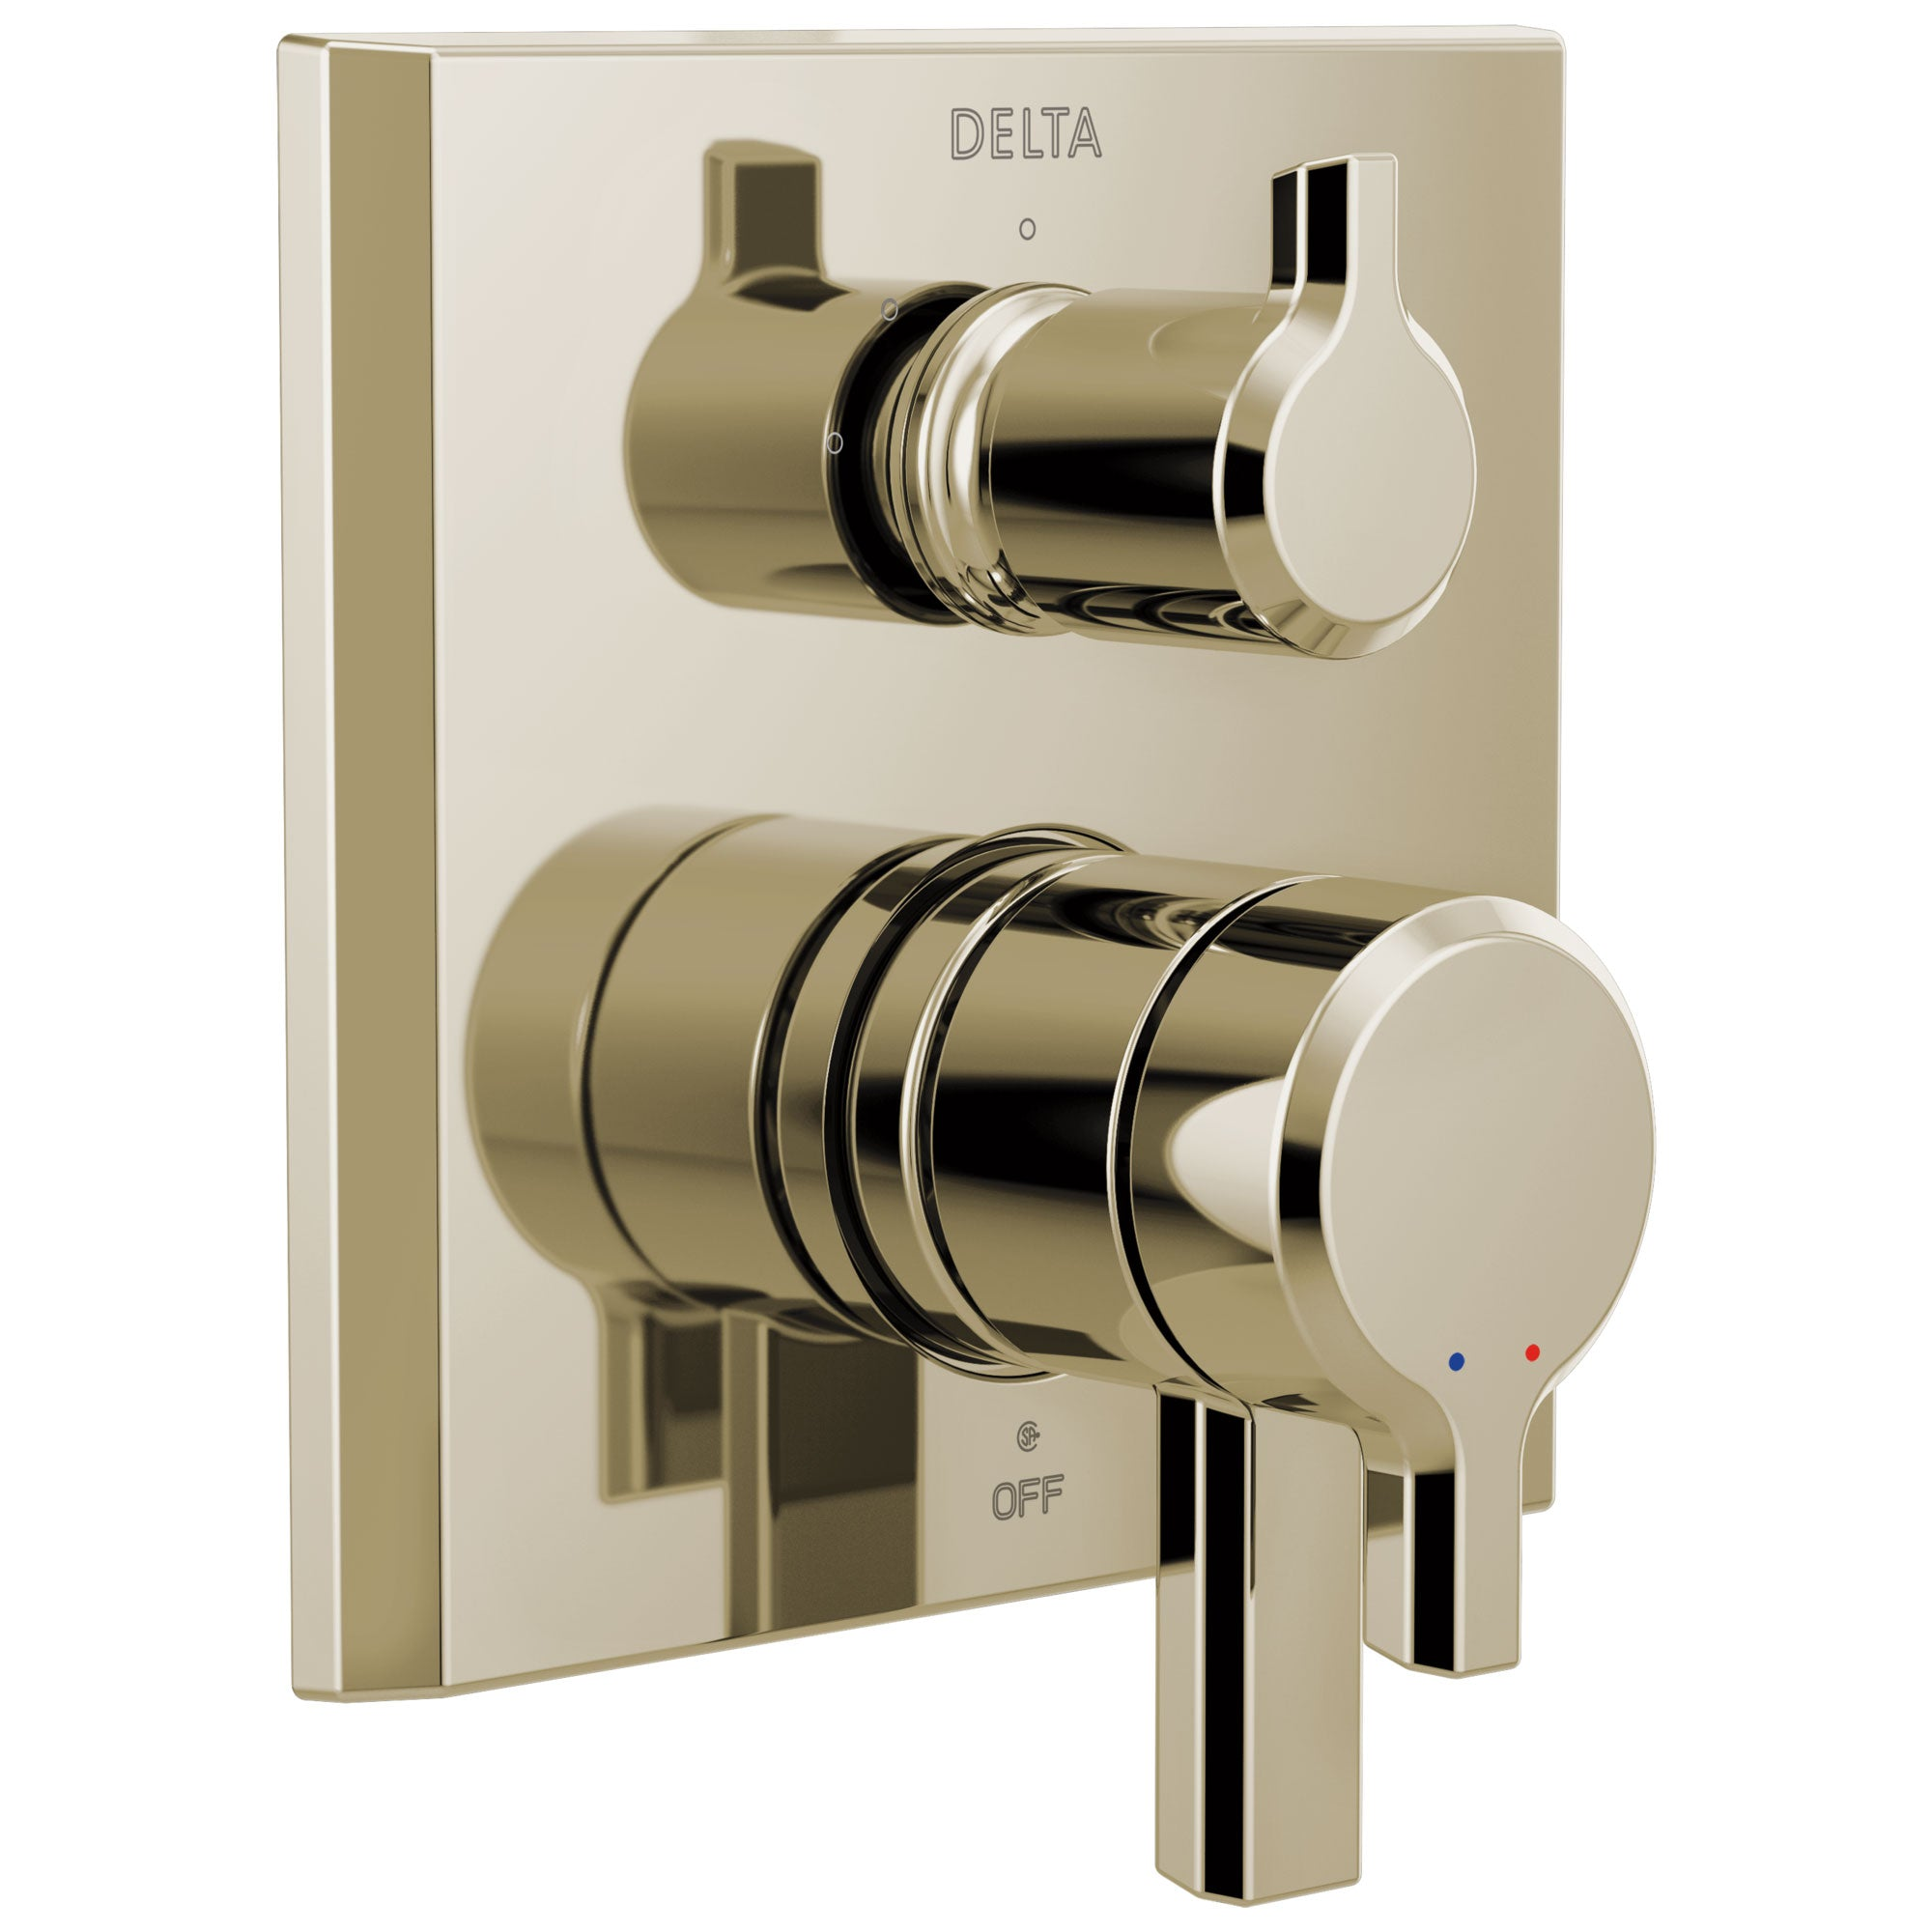 Delta Pivotal Polished Nickel Finish Monitor 17 Series Shower Control Trim Kit with 3-Function Integrated Diverter (Requires Valve) DT27899PN